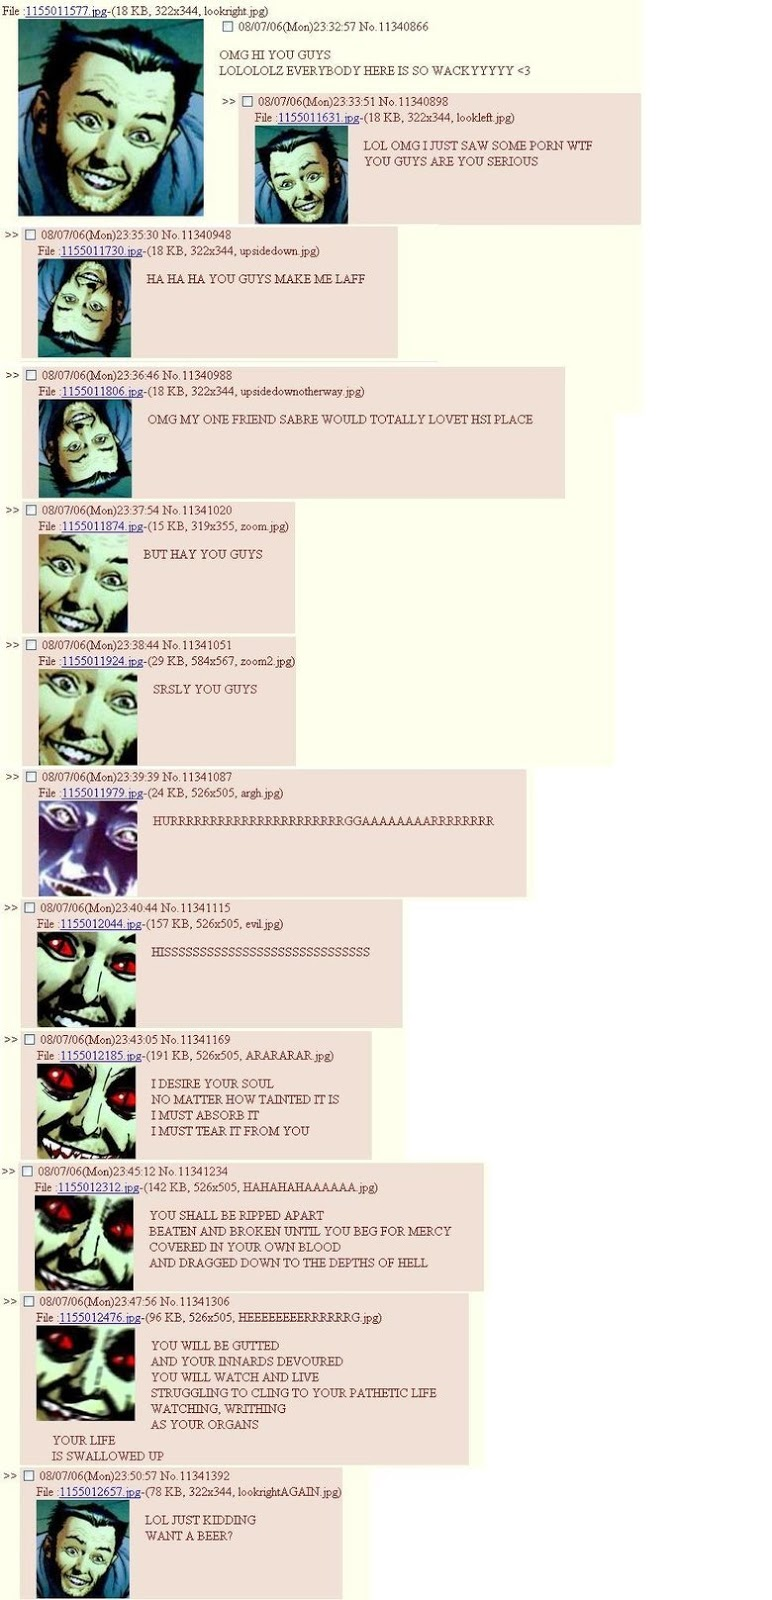 An incredibly creepy yet funny greentext